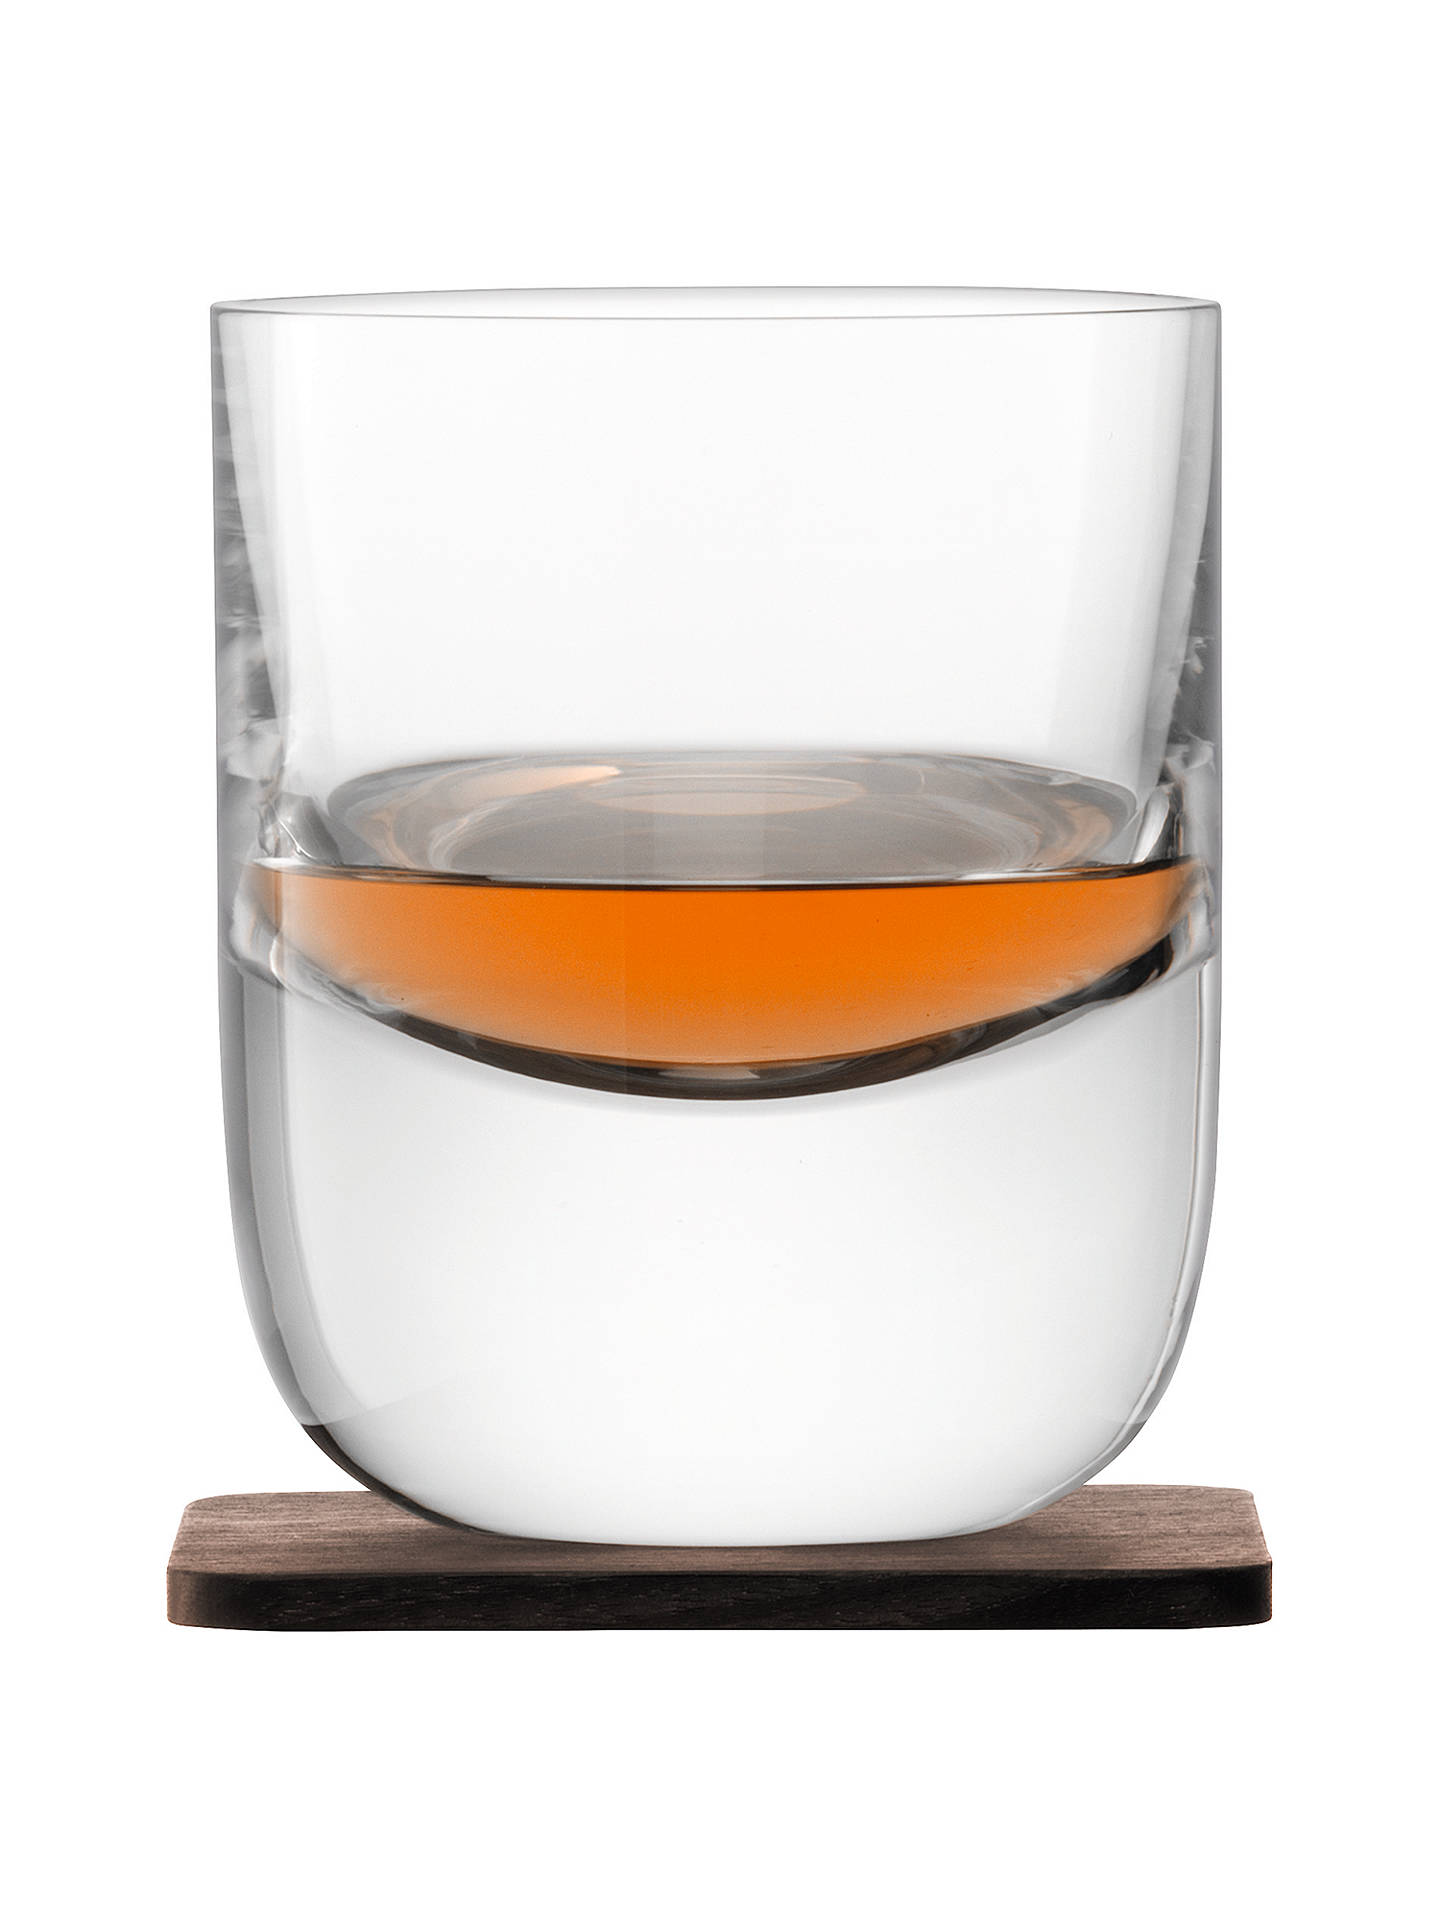 BuyLSA International Straight Whisky Tumbler with Coaster, Set of 2 Online at johnlewis.com